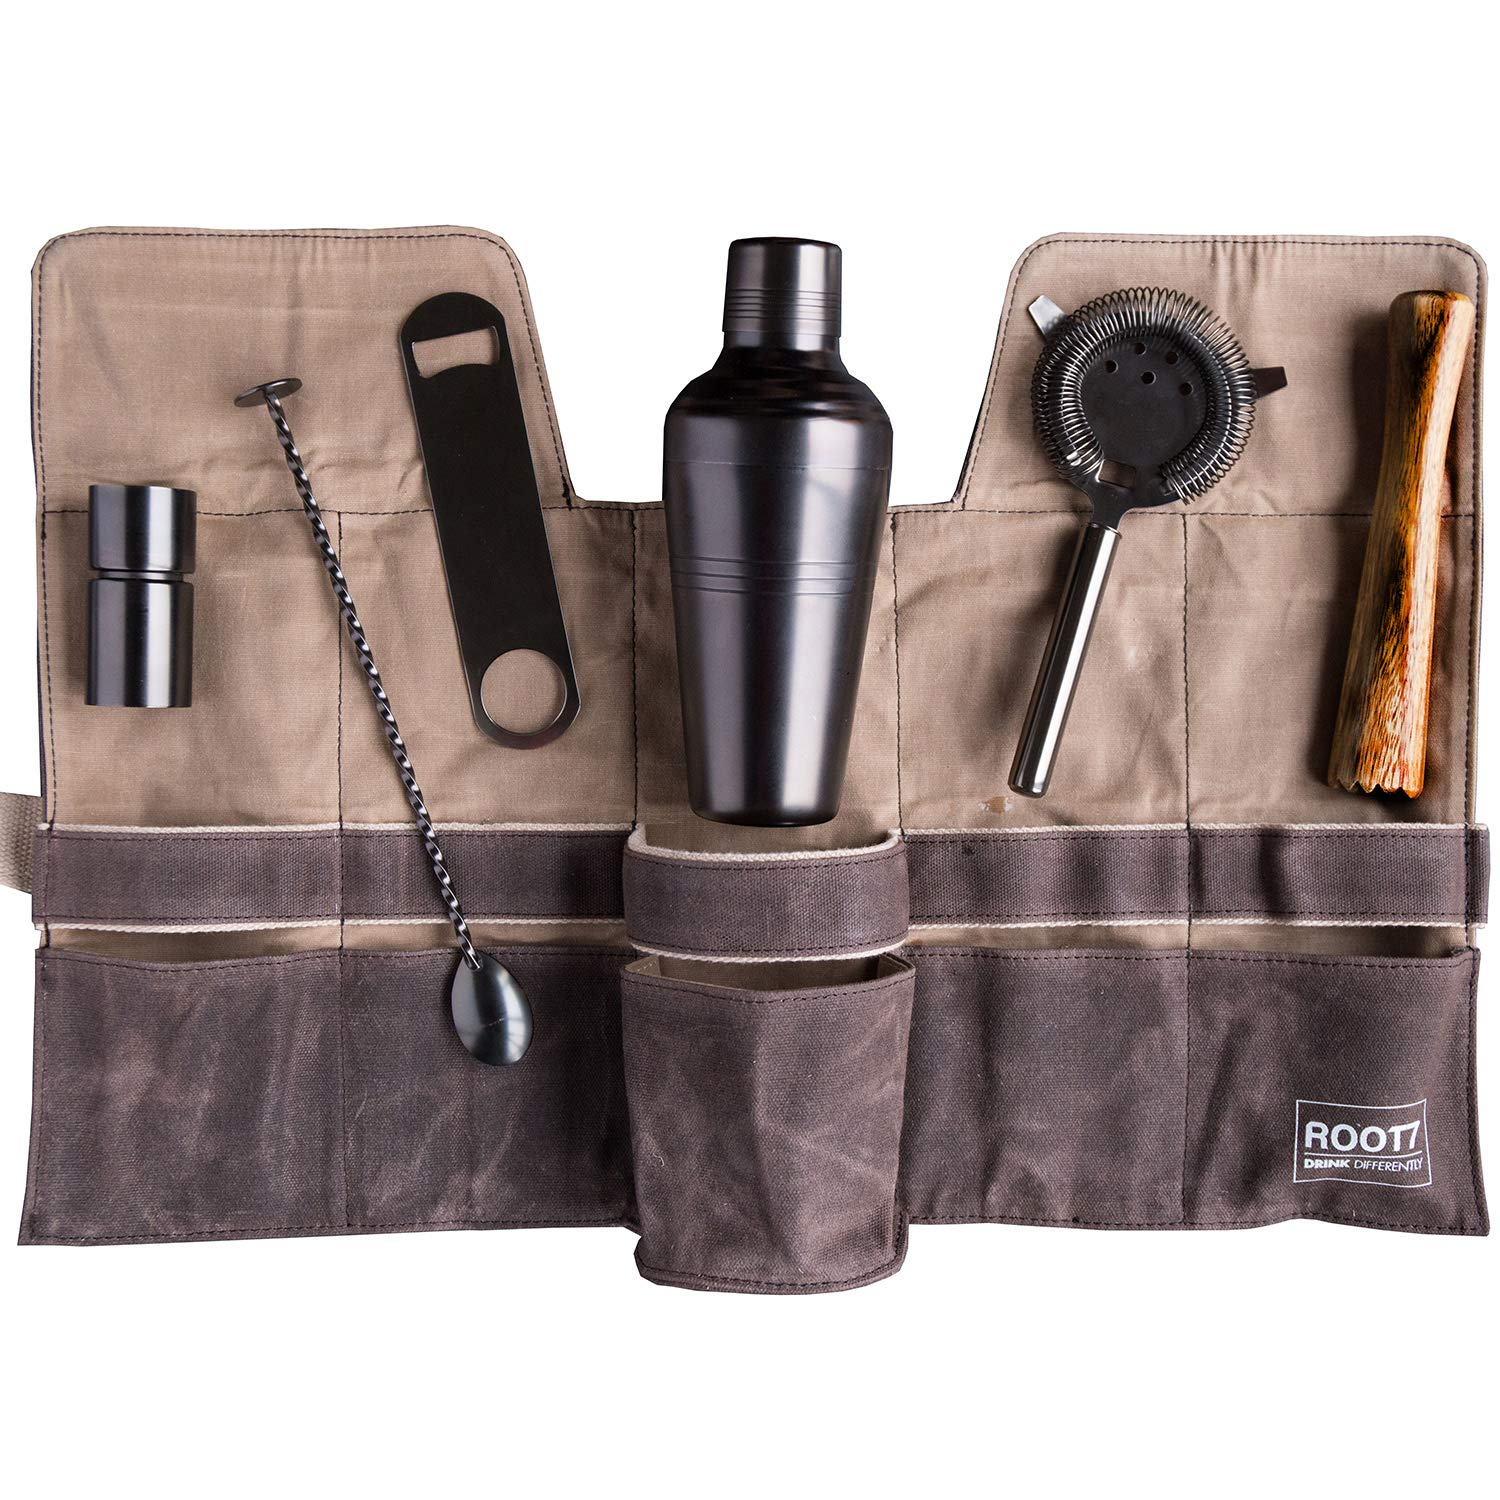 Premium Modern Titanium Coated Professional Bartender Kit, Home and Workplace Cocktail Making Set, 19oz Shaker, Bar Blade, Jigger, Wood Muddler, Strainer, Spoon and Wax Canvas Bag by Root7 ROOT7CBAG